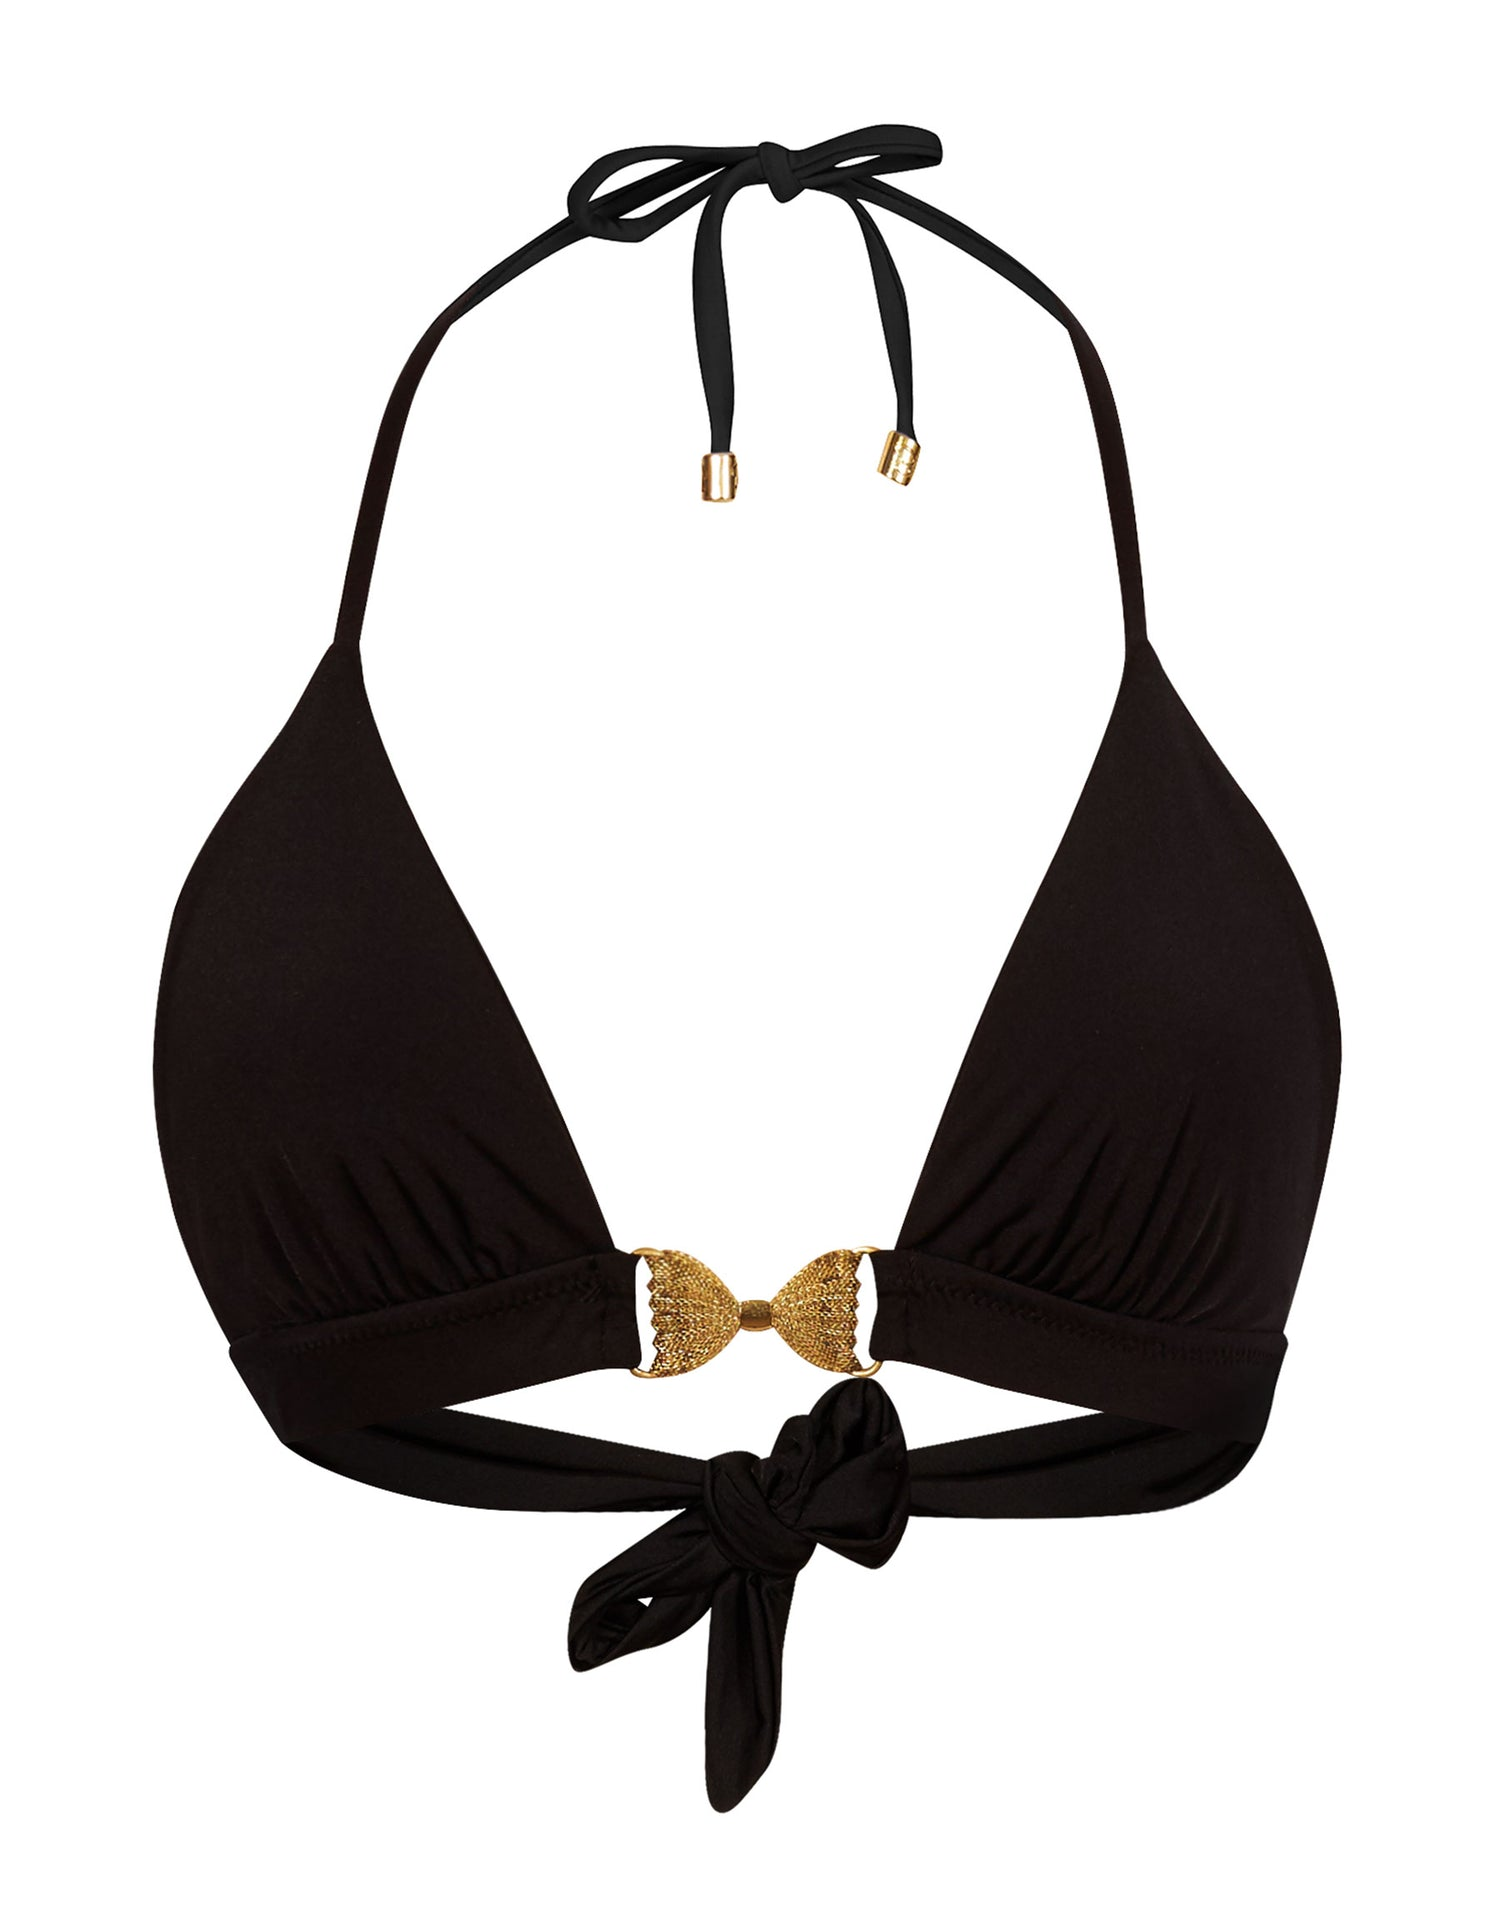 Smith Sexy Triangle Top in Black with Gold Bow Hardware - product view